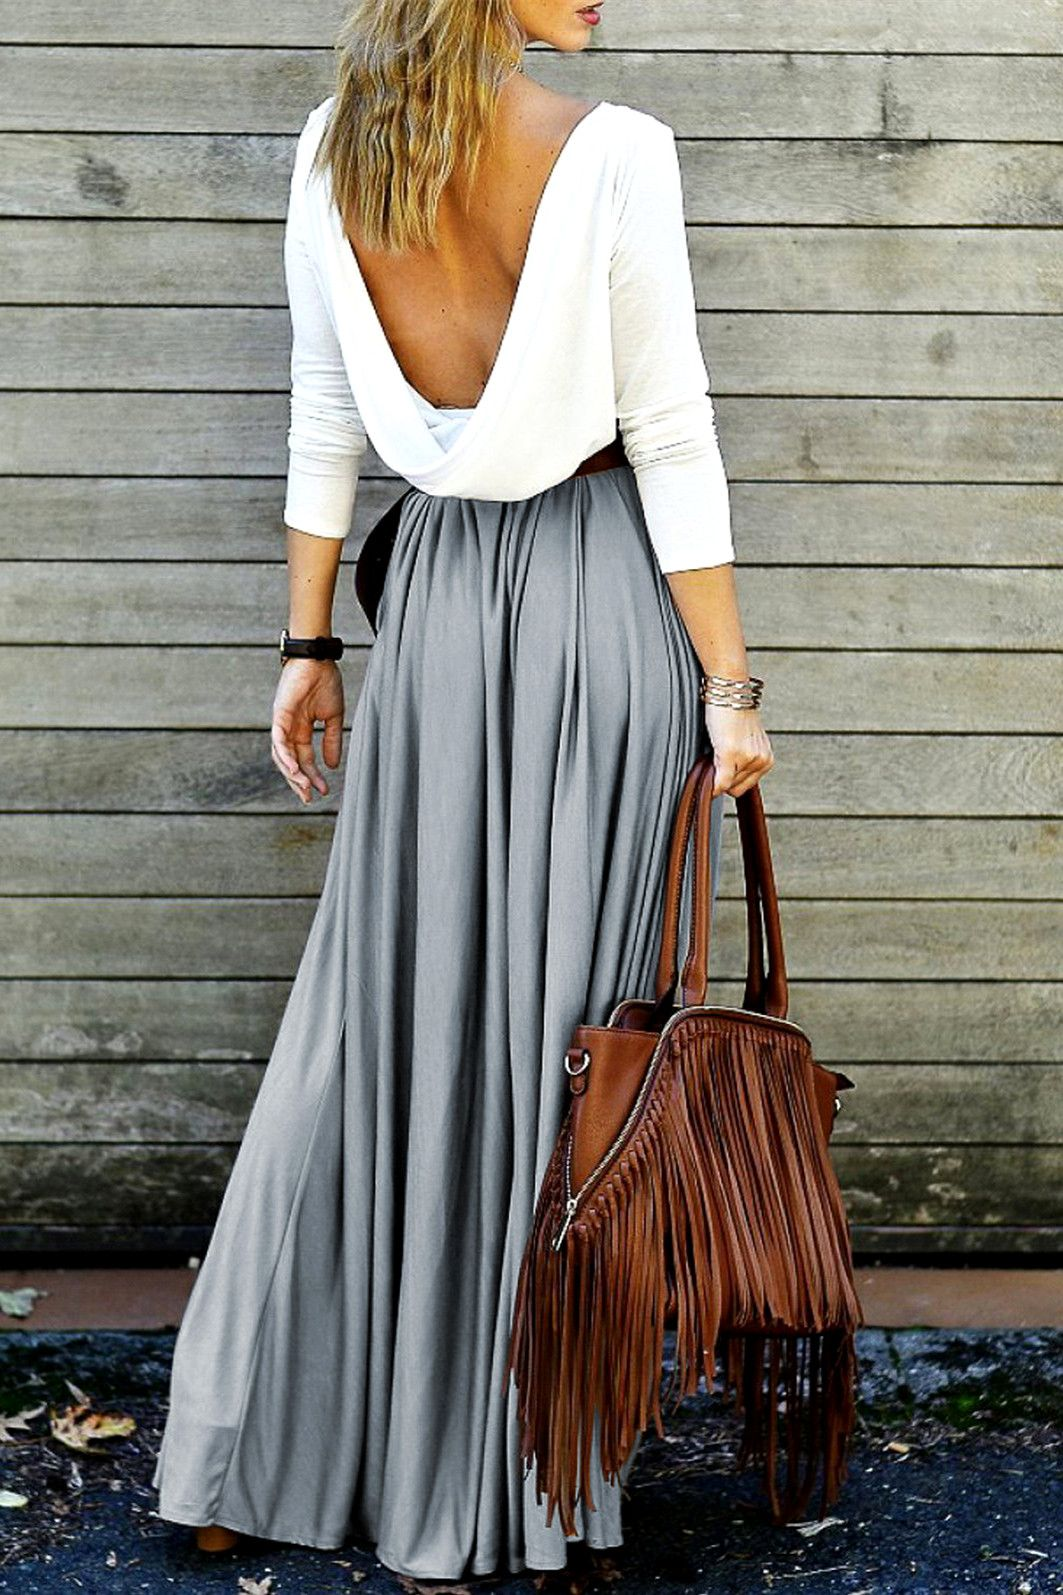 great colors and dress Fashion Pinterest Long sleeve maxi